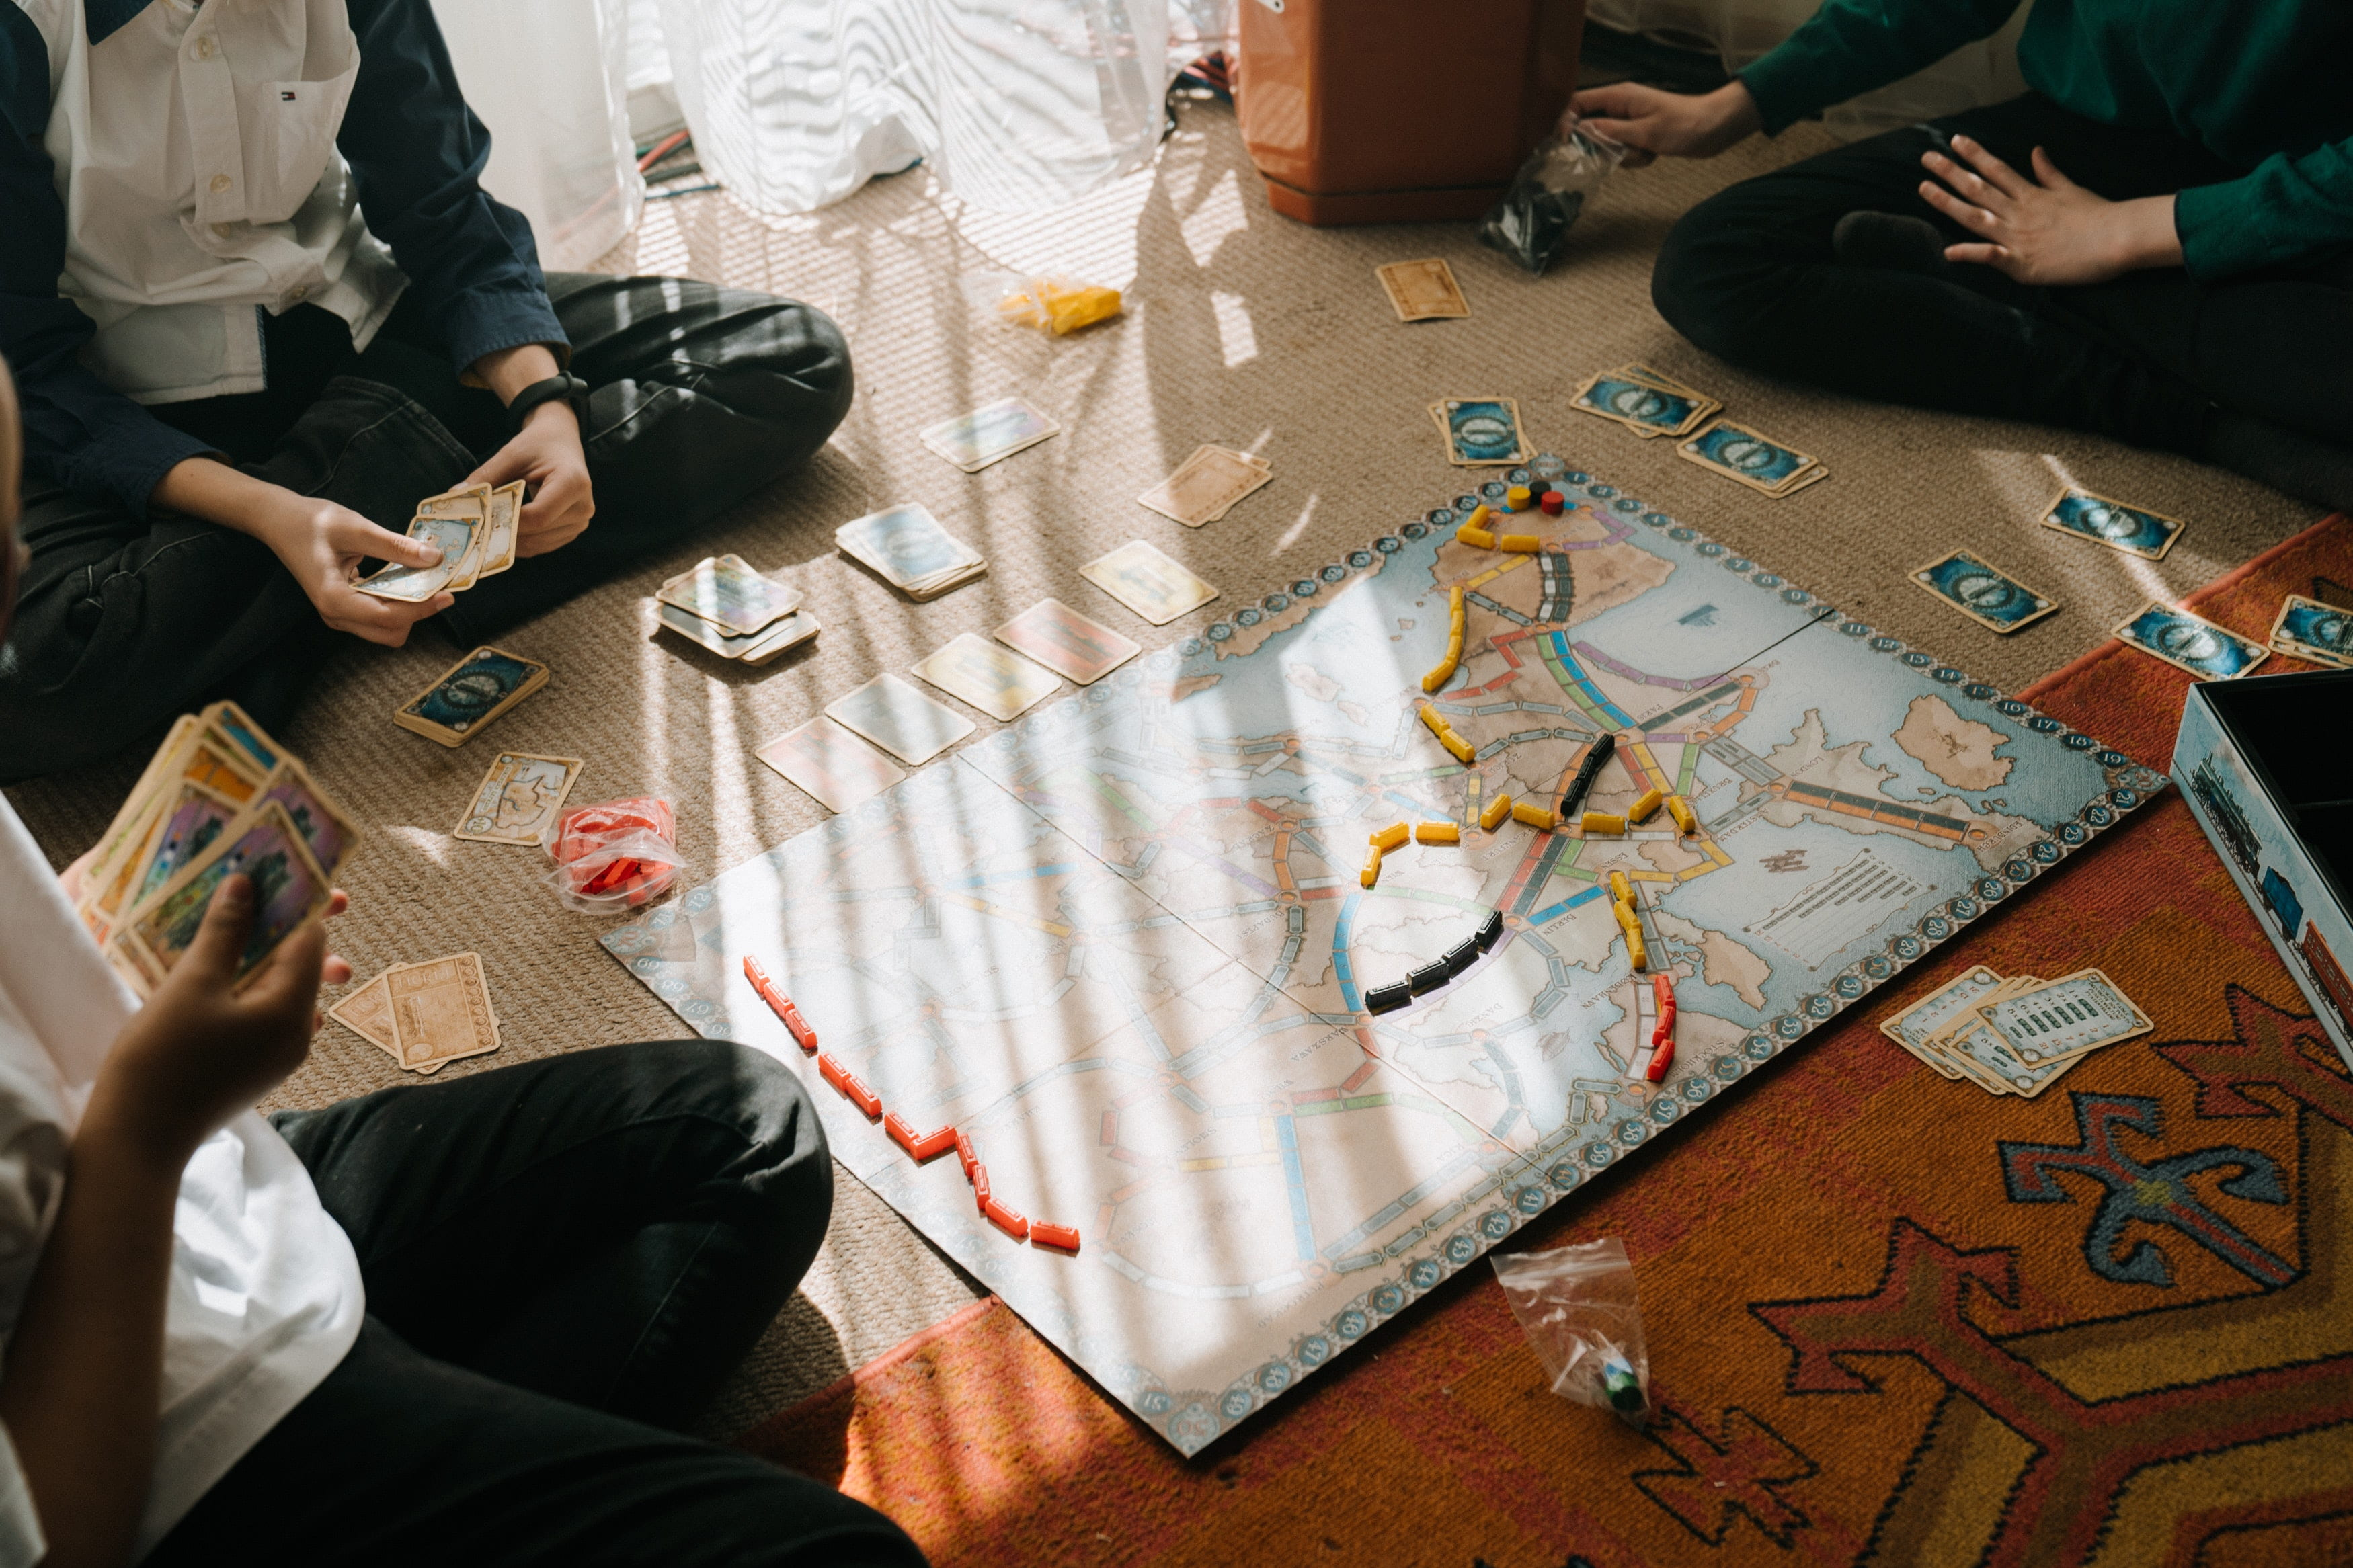 Group of people sitting on floor around a board game